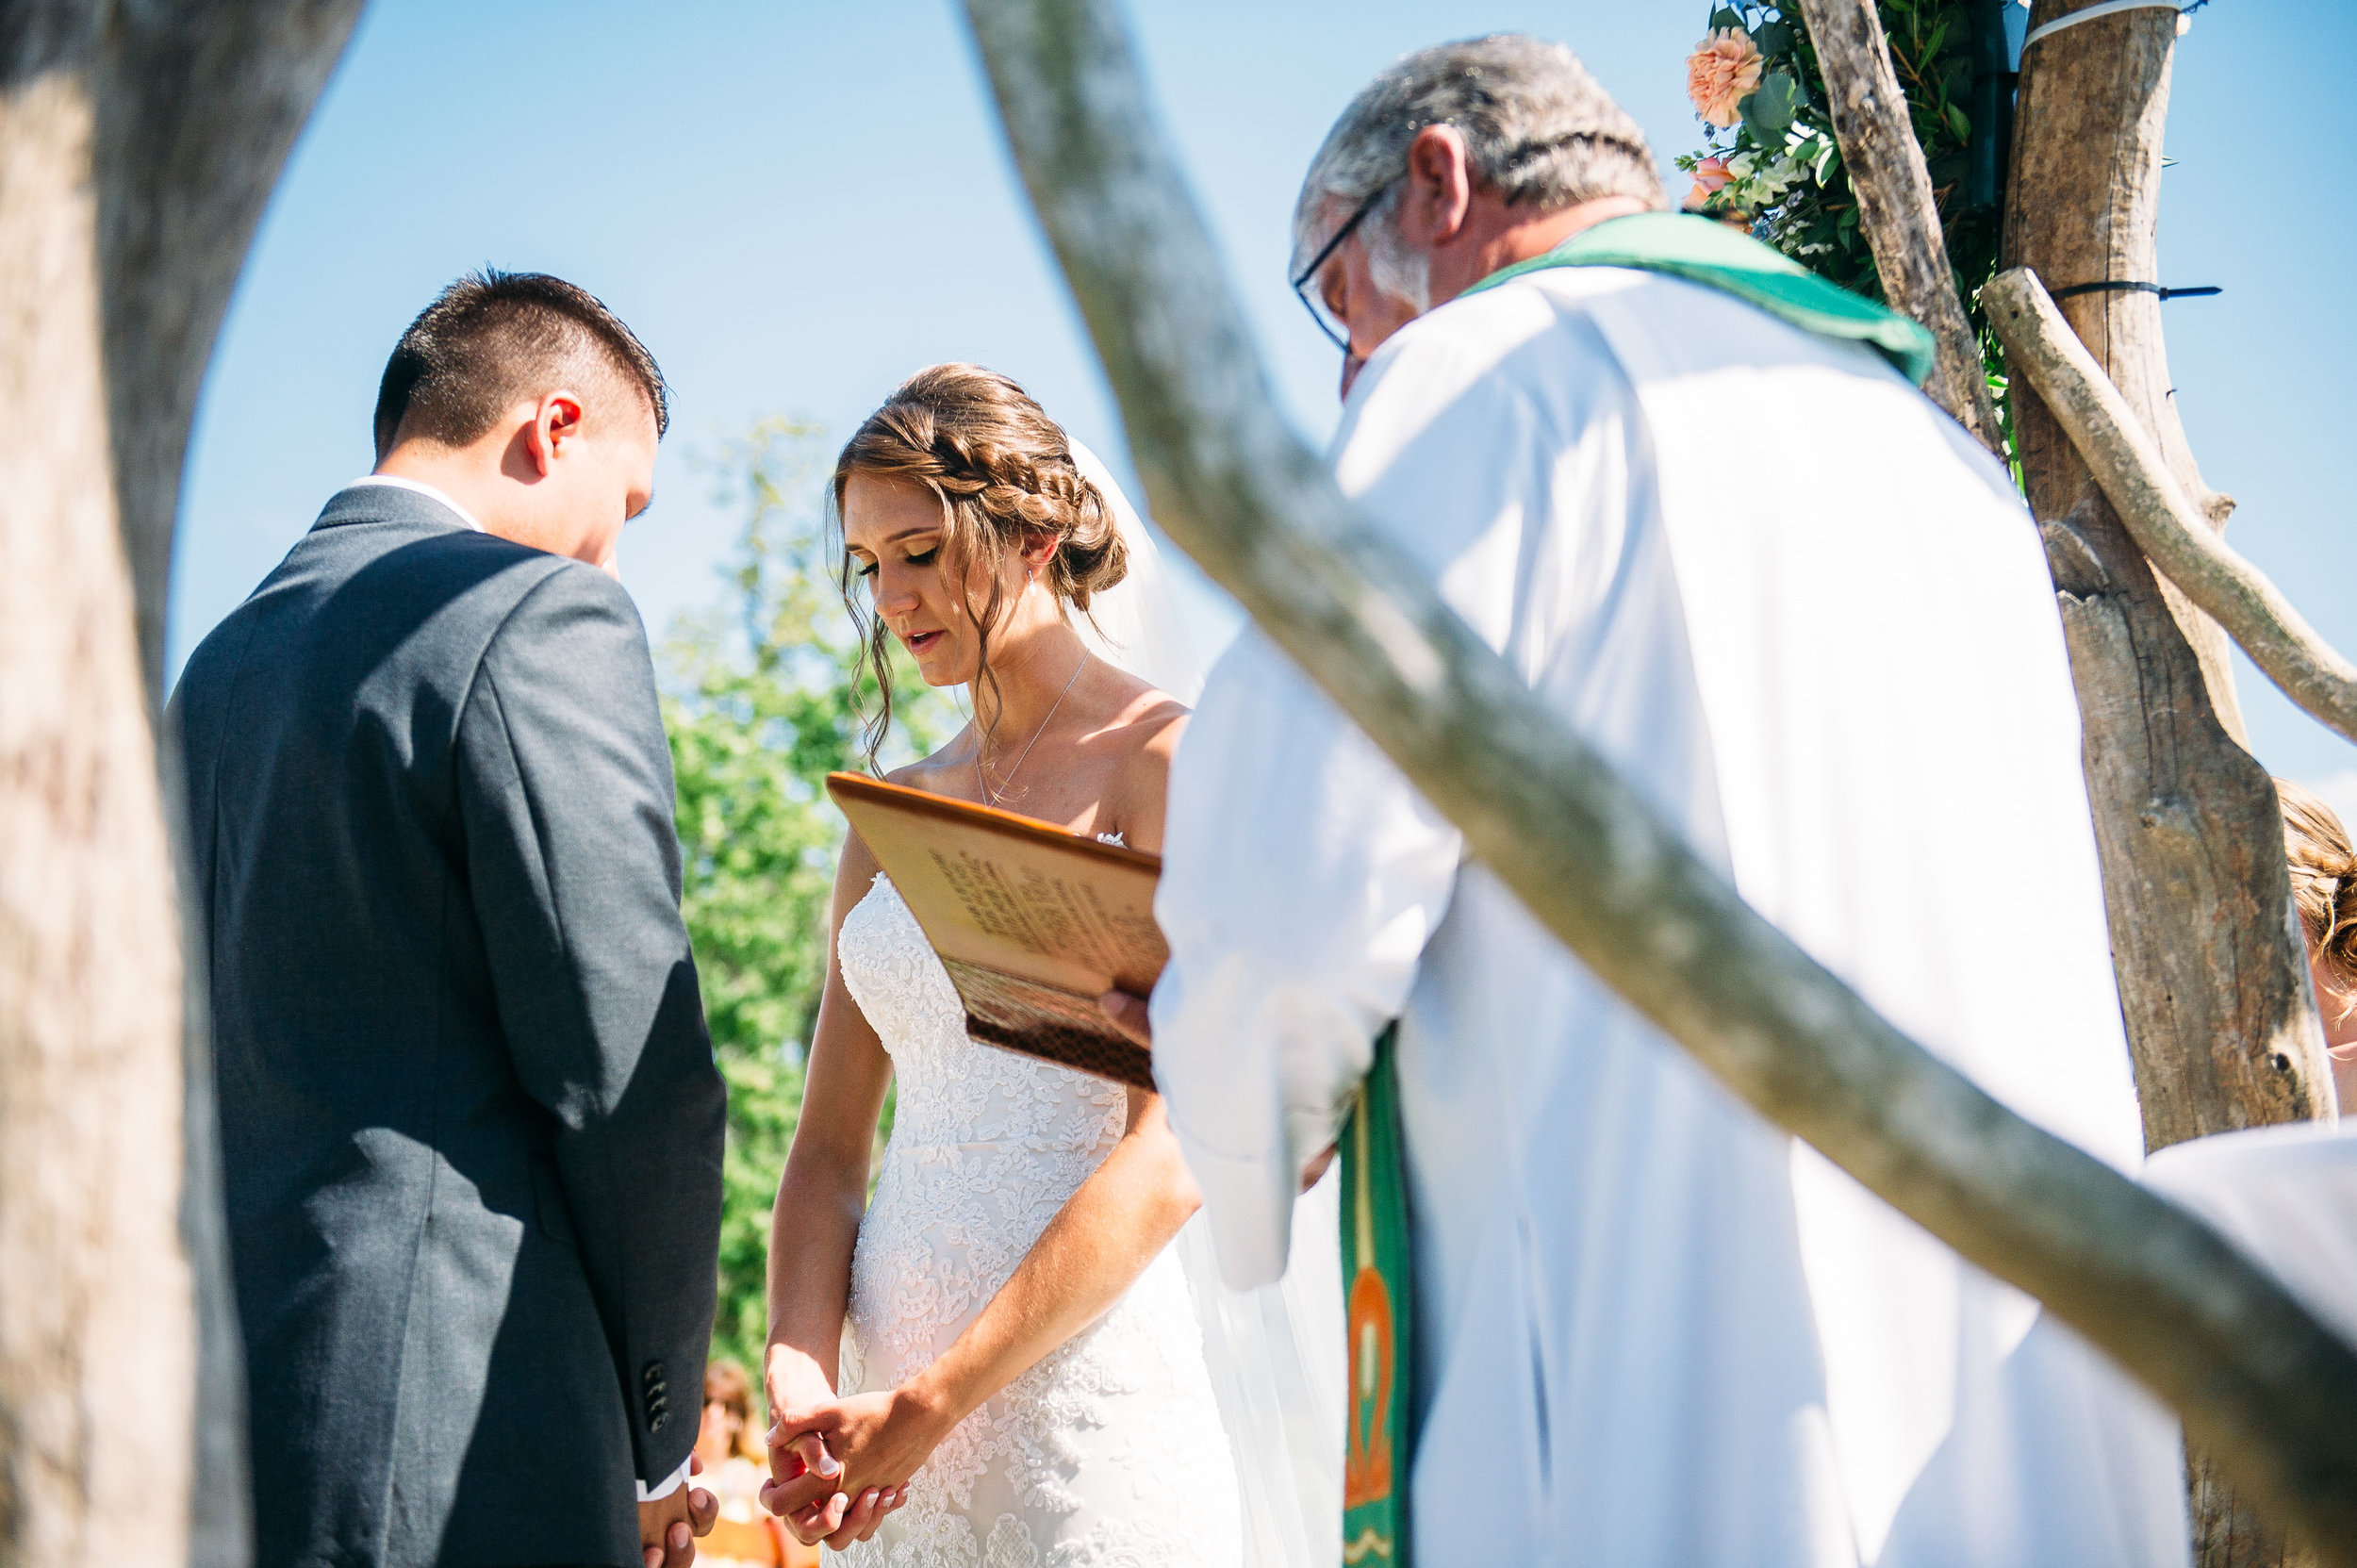 Cameron-Price-Peach-Creek-Ranch-Wedding-Ceremony-Bridals-Engagement-College-Station-Photographer-Videographer-San-Angel-Photo-00-0144.jpg